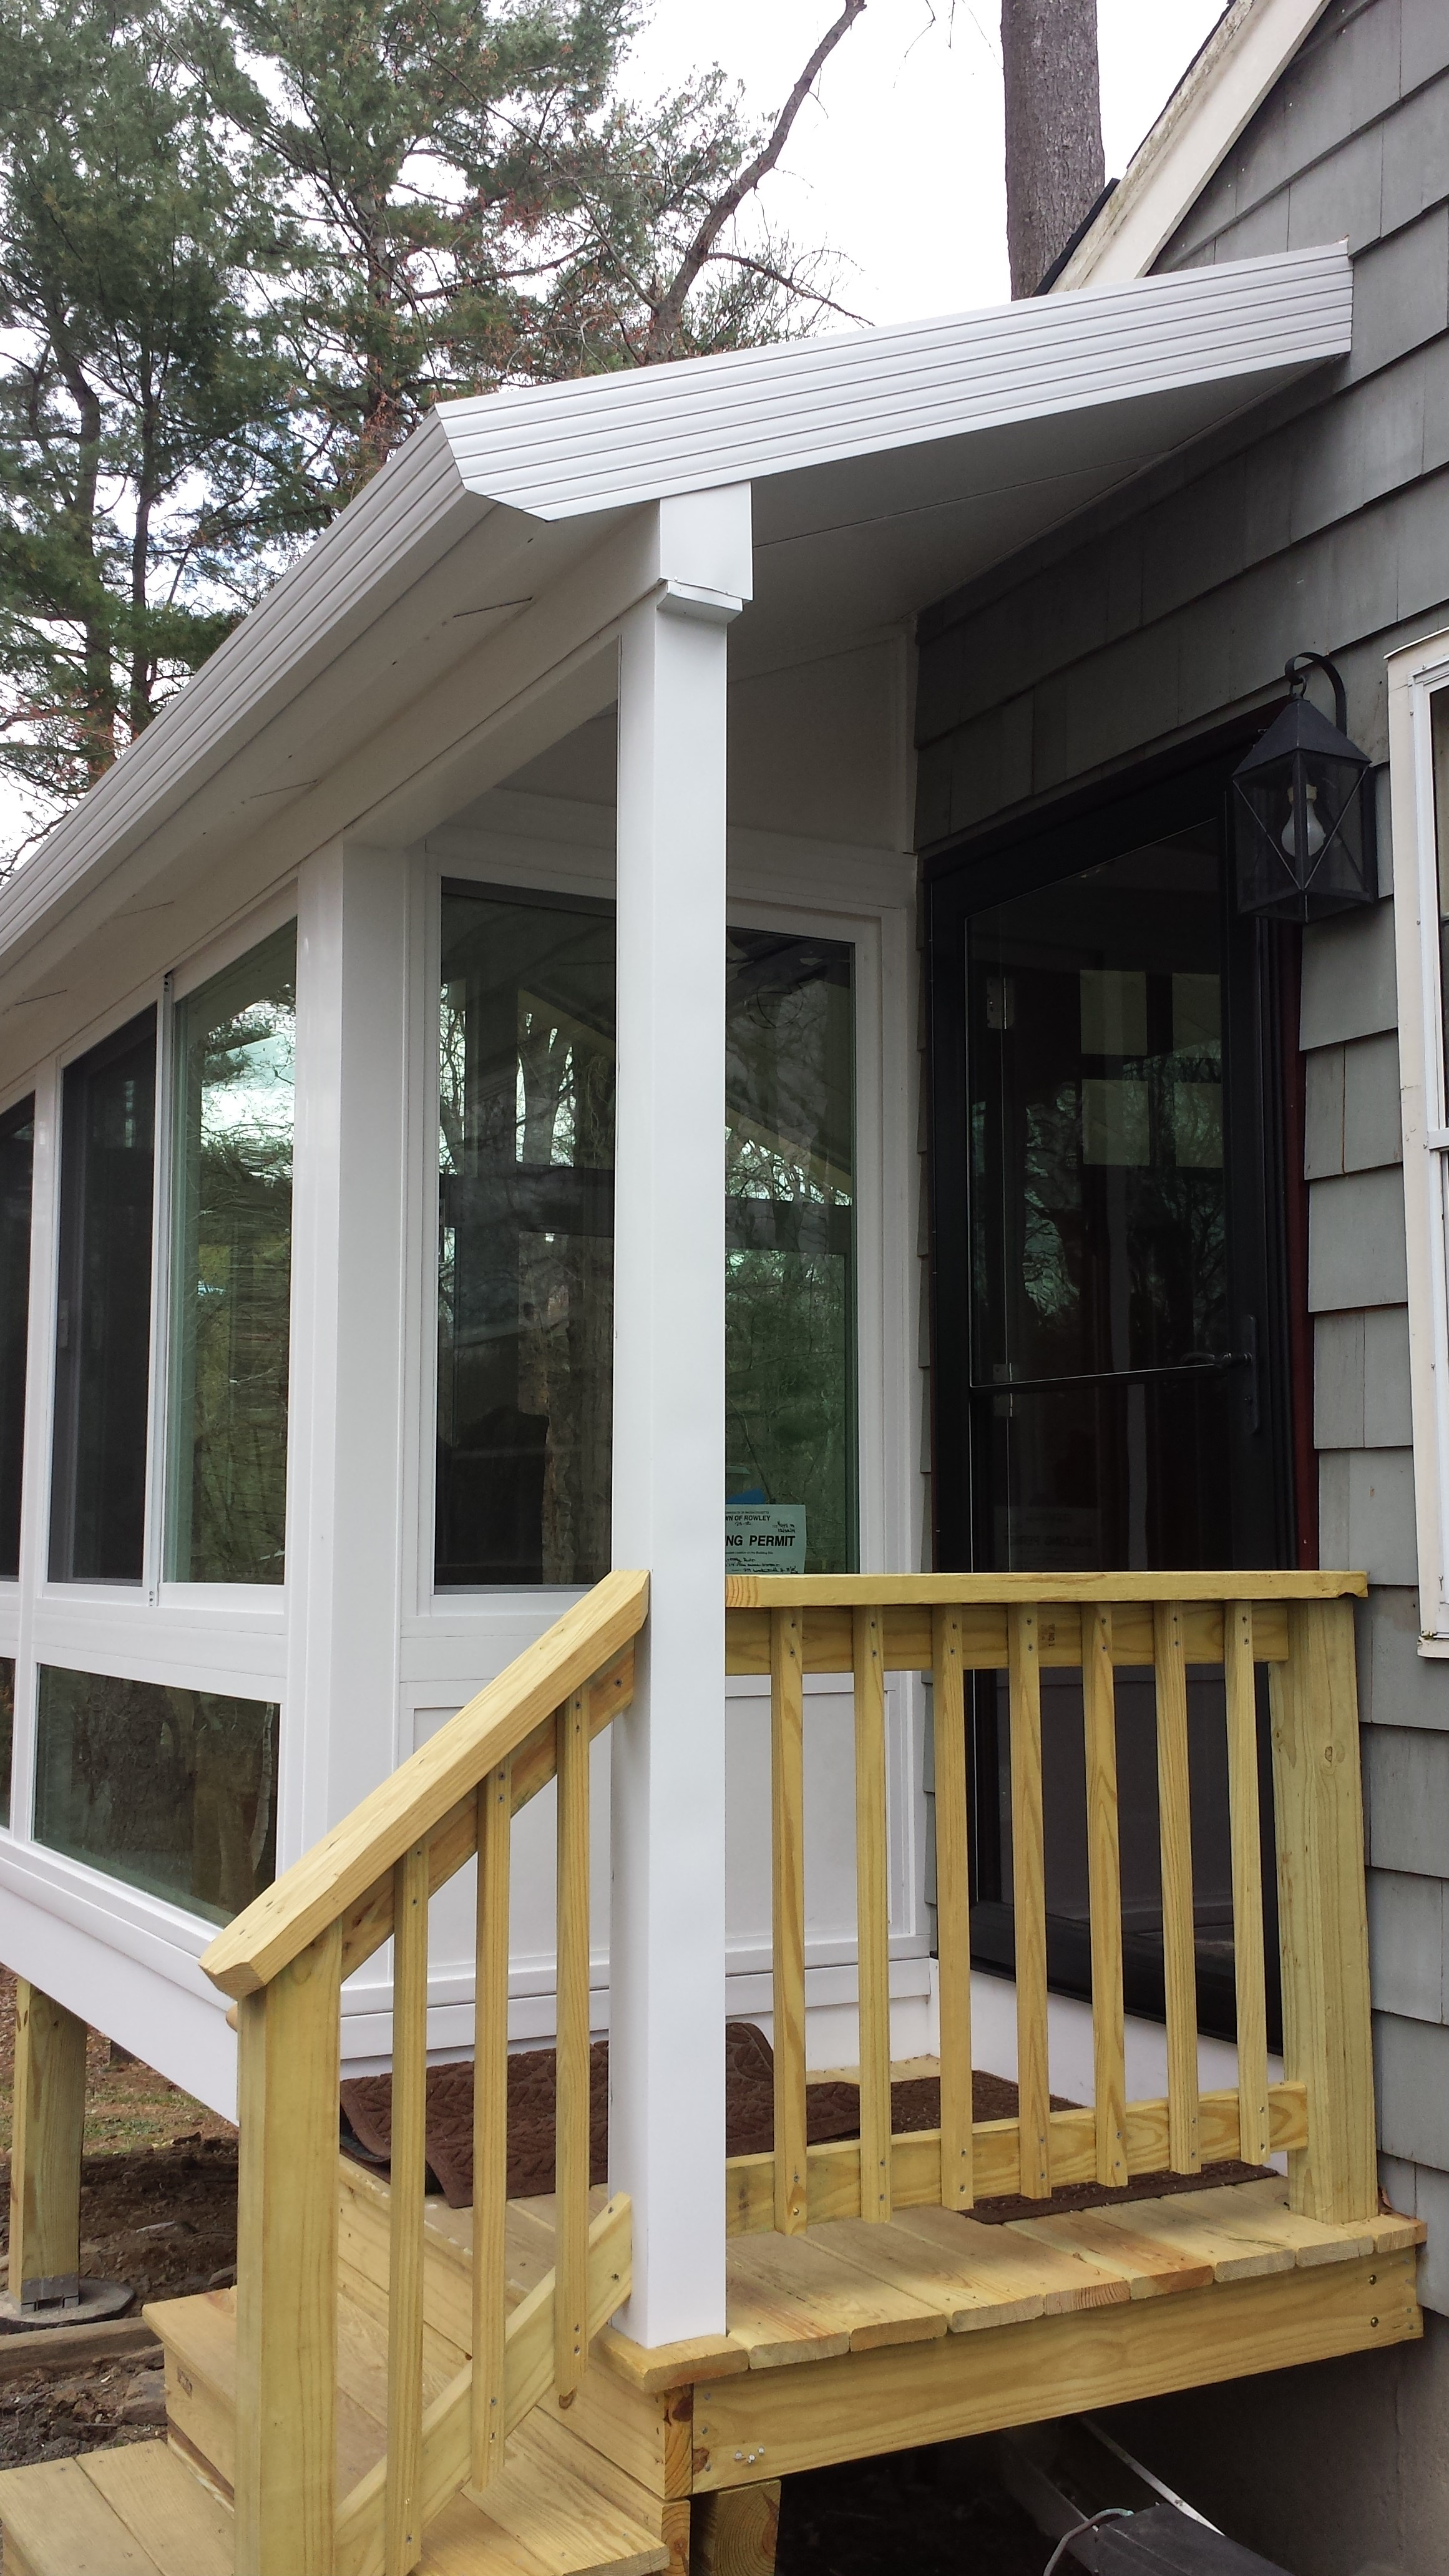 How could a sunroom fit there?